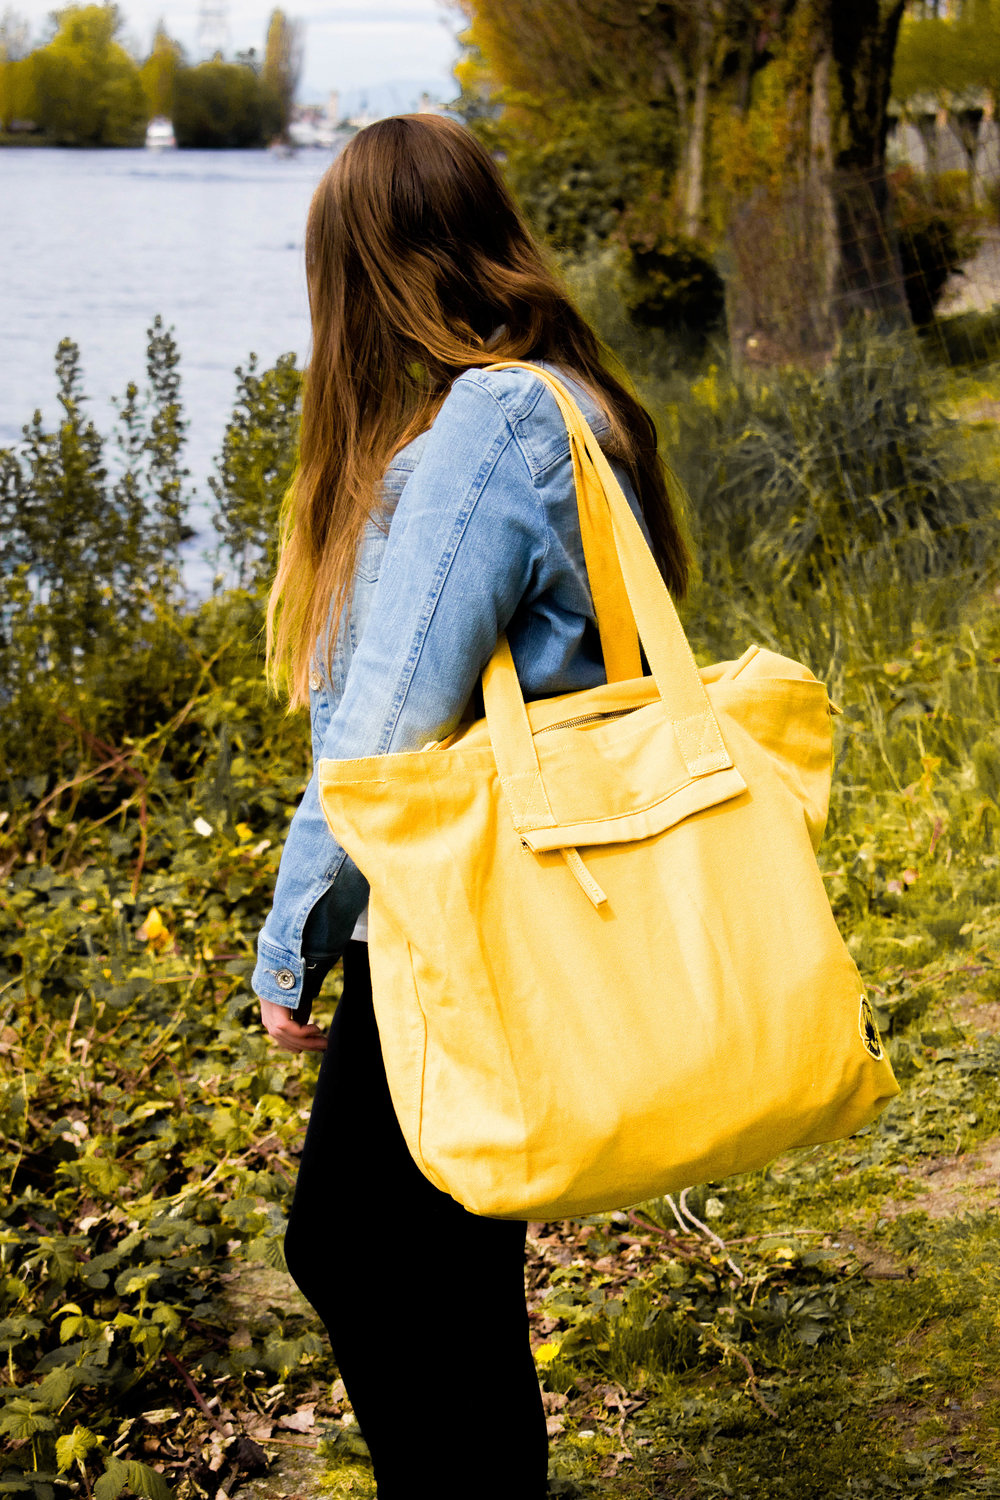 fair trade organic tote bag for ethical style